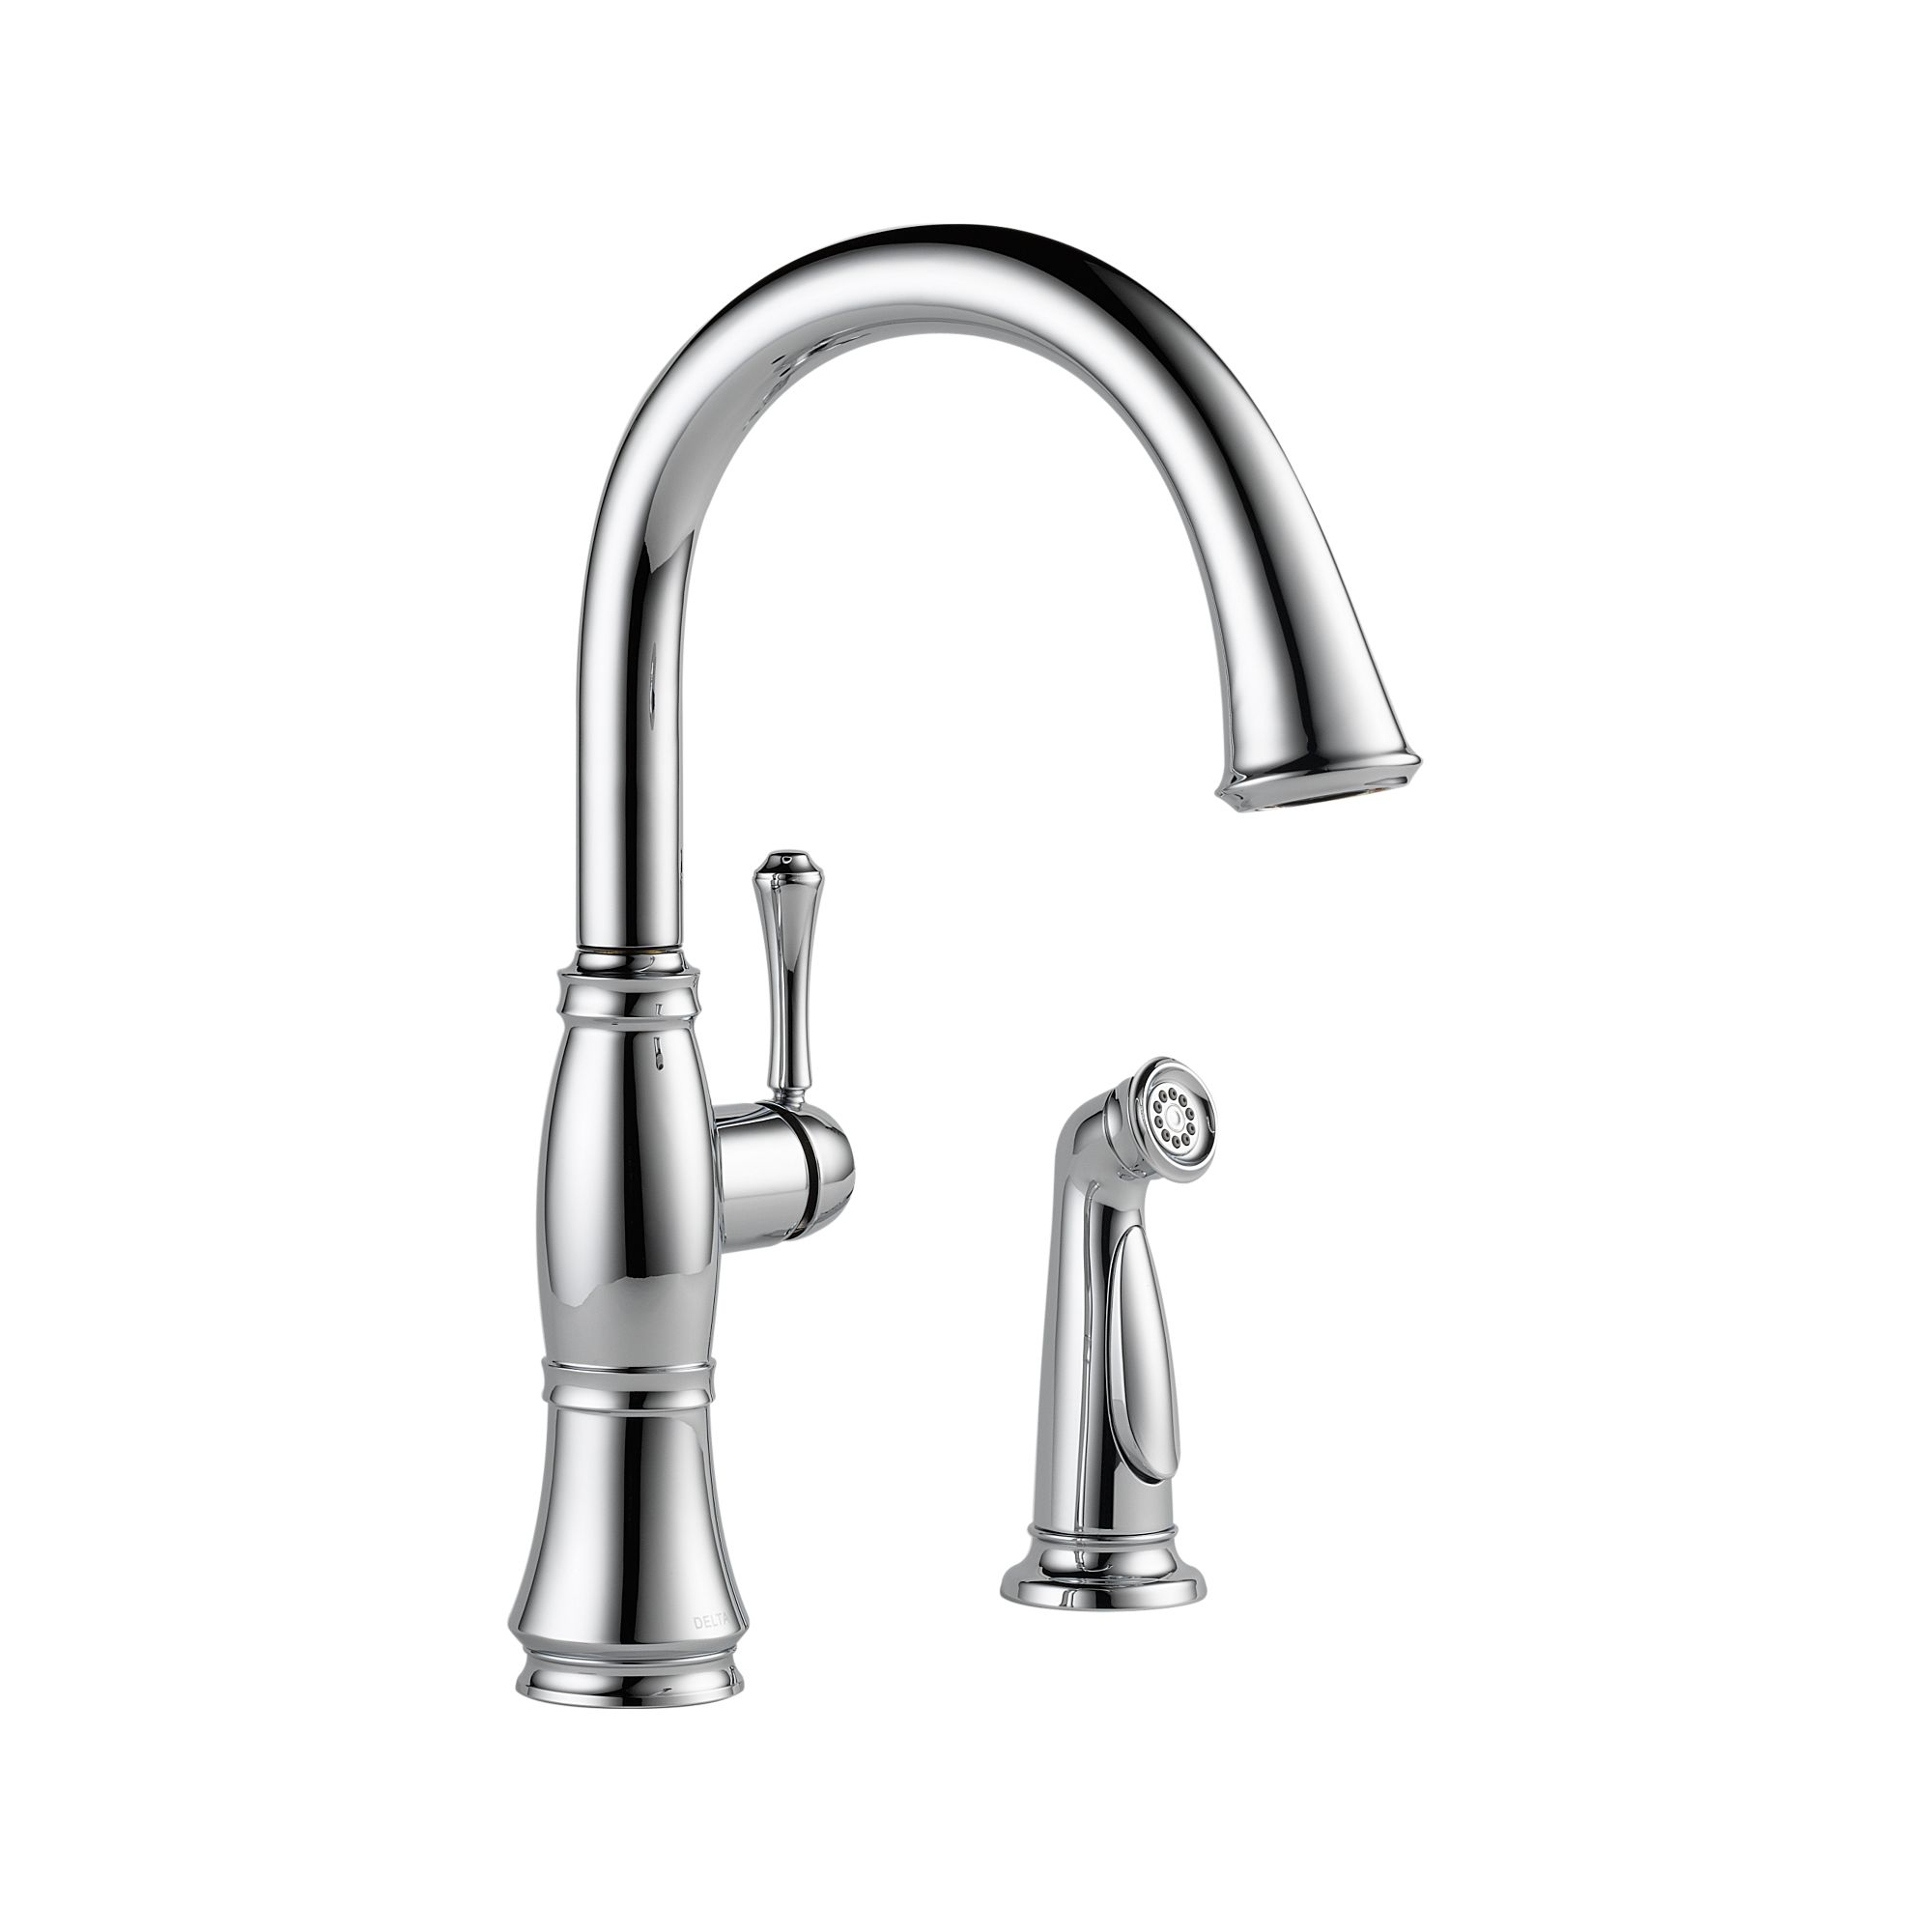 Amazing delta cassidy kitchen faucet for kitchen faucet ideas with delta single handle kitchen faucet with spray